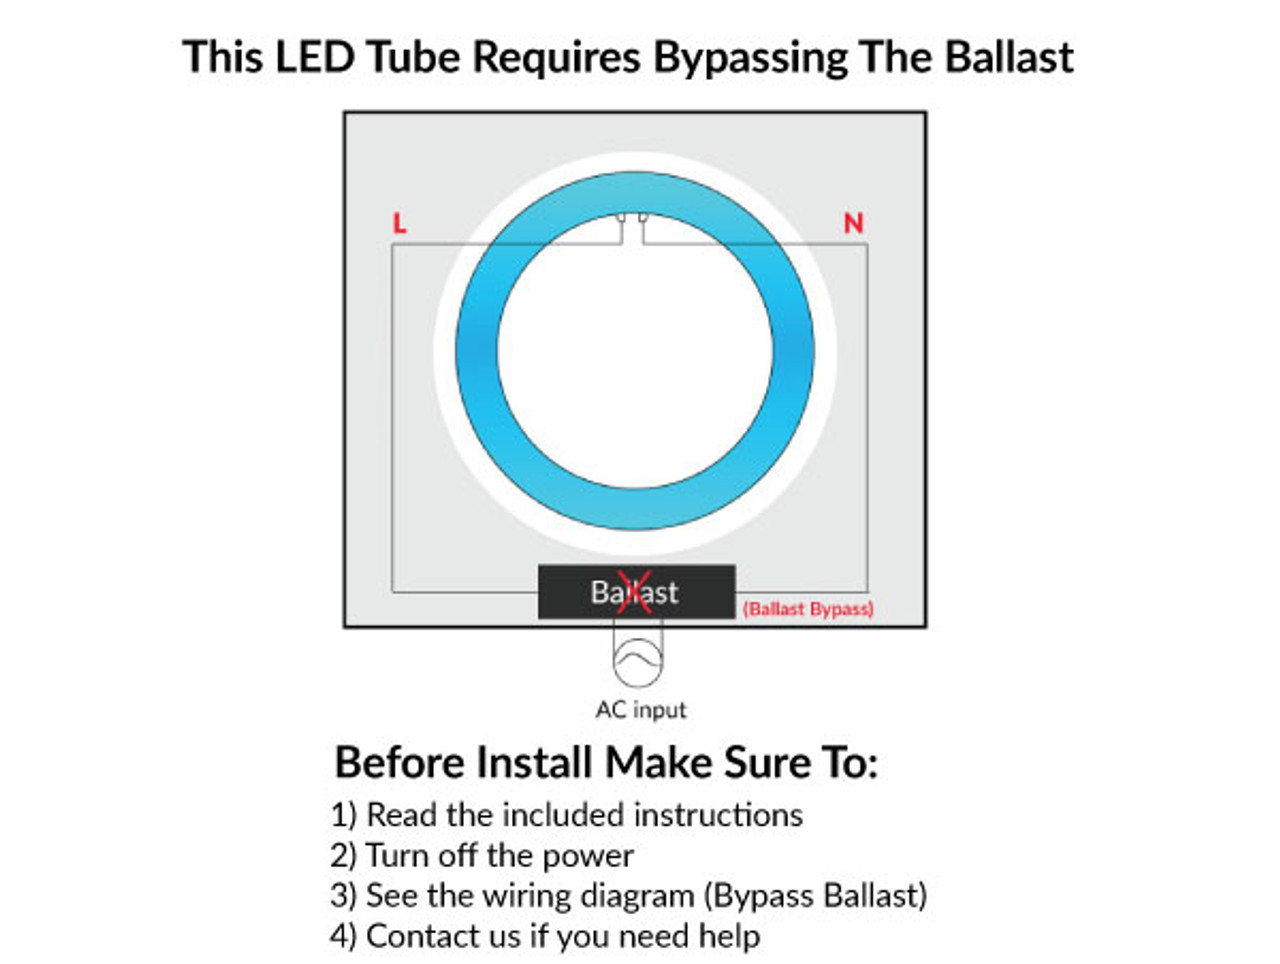 Circular Fluorescent Light Wiring Diagram from cdn11.bigcommerce.com